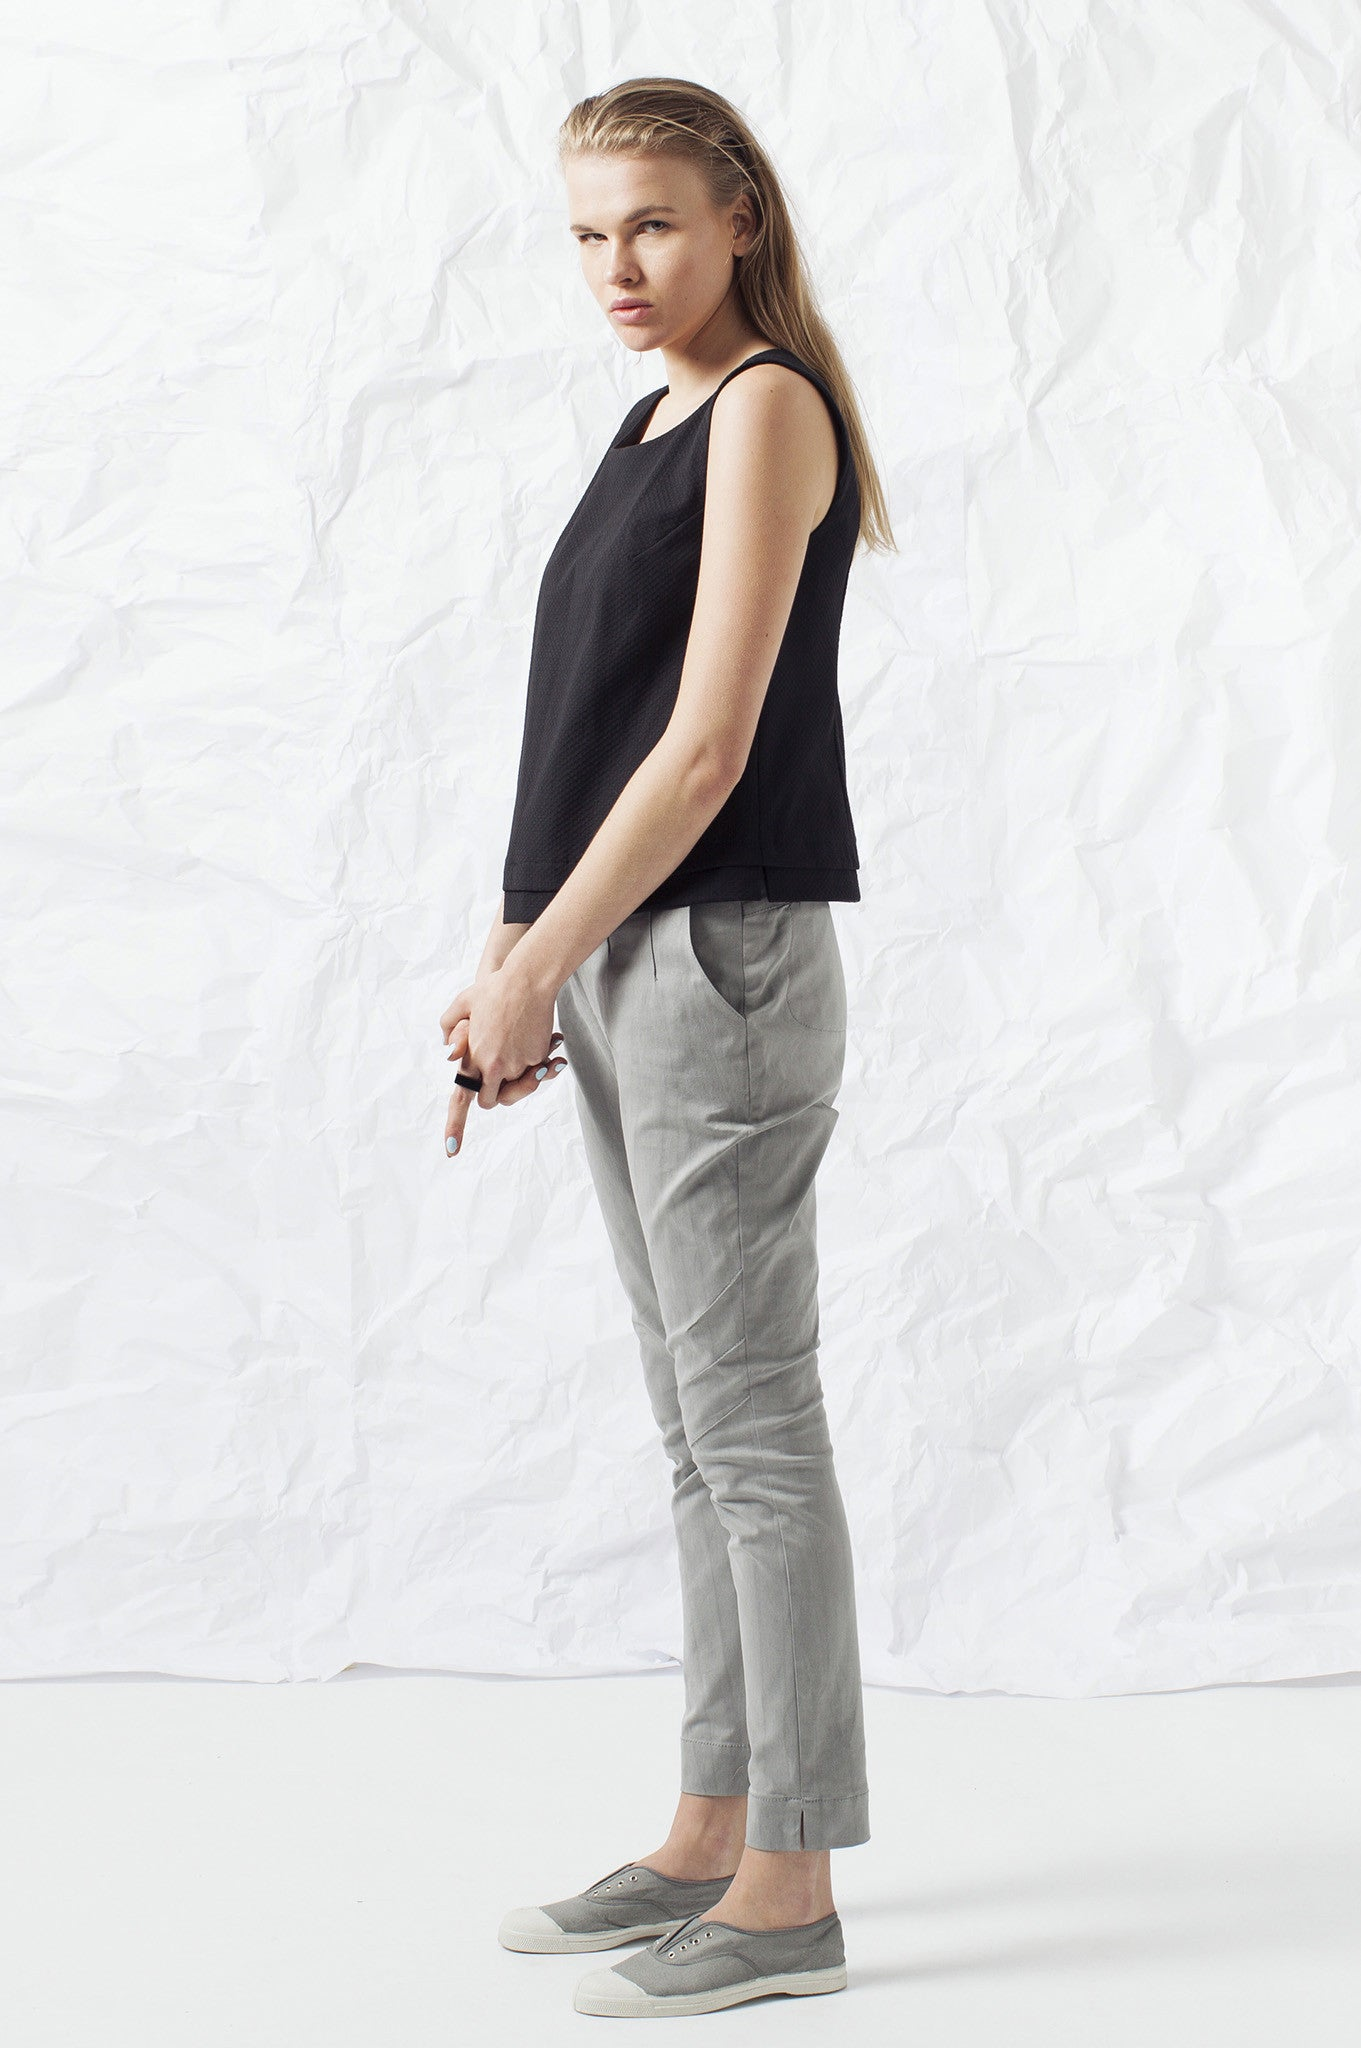 HIGH WAIST GRAY PANTS